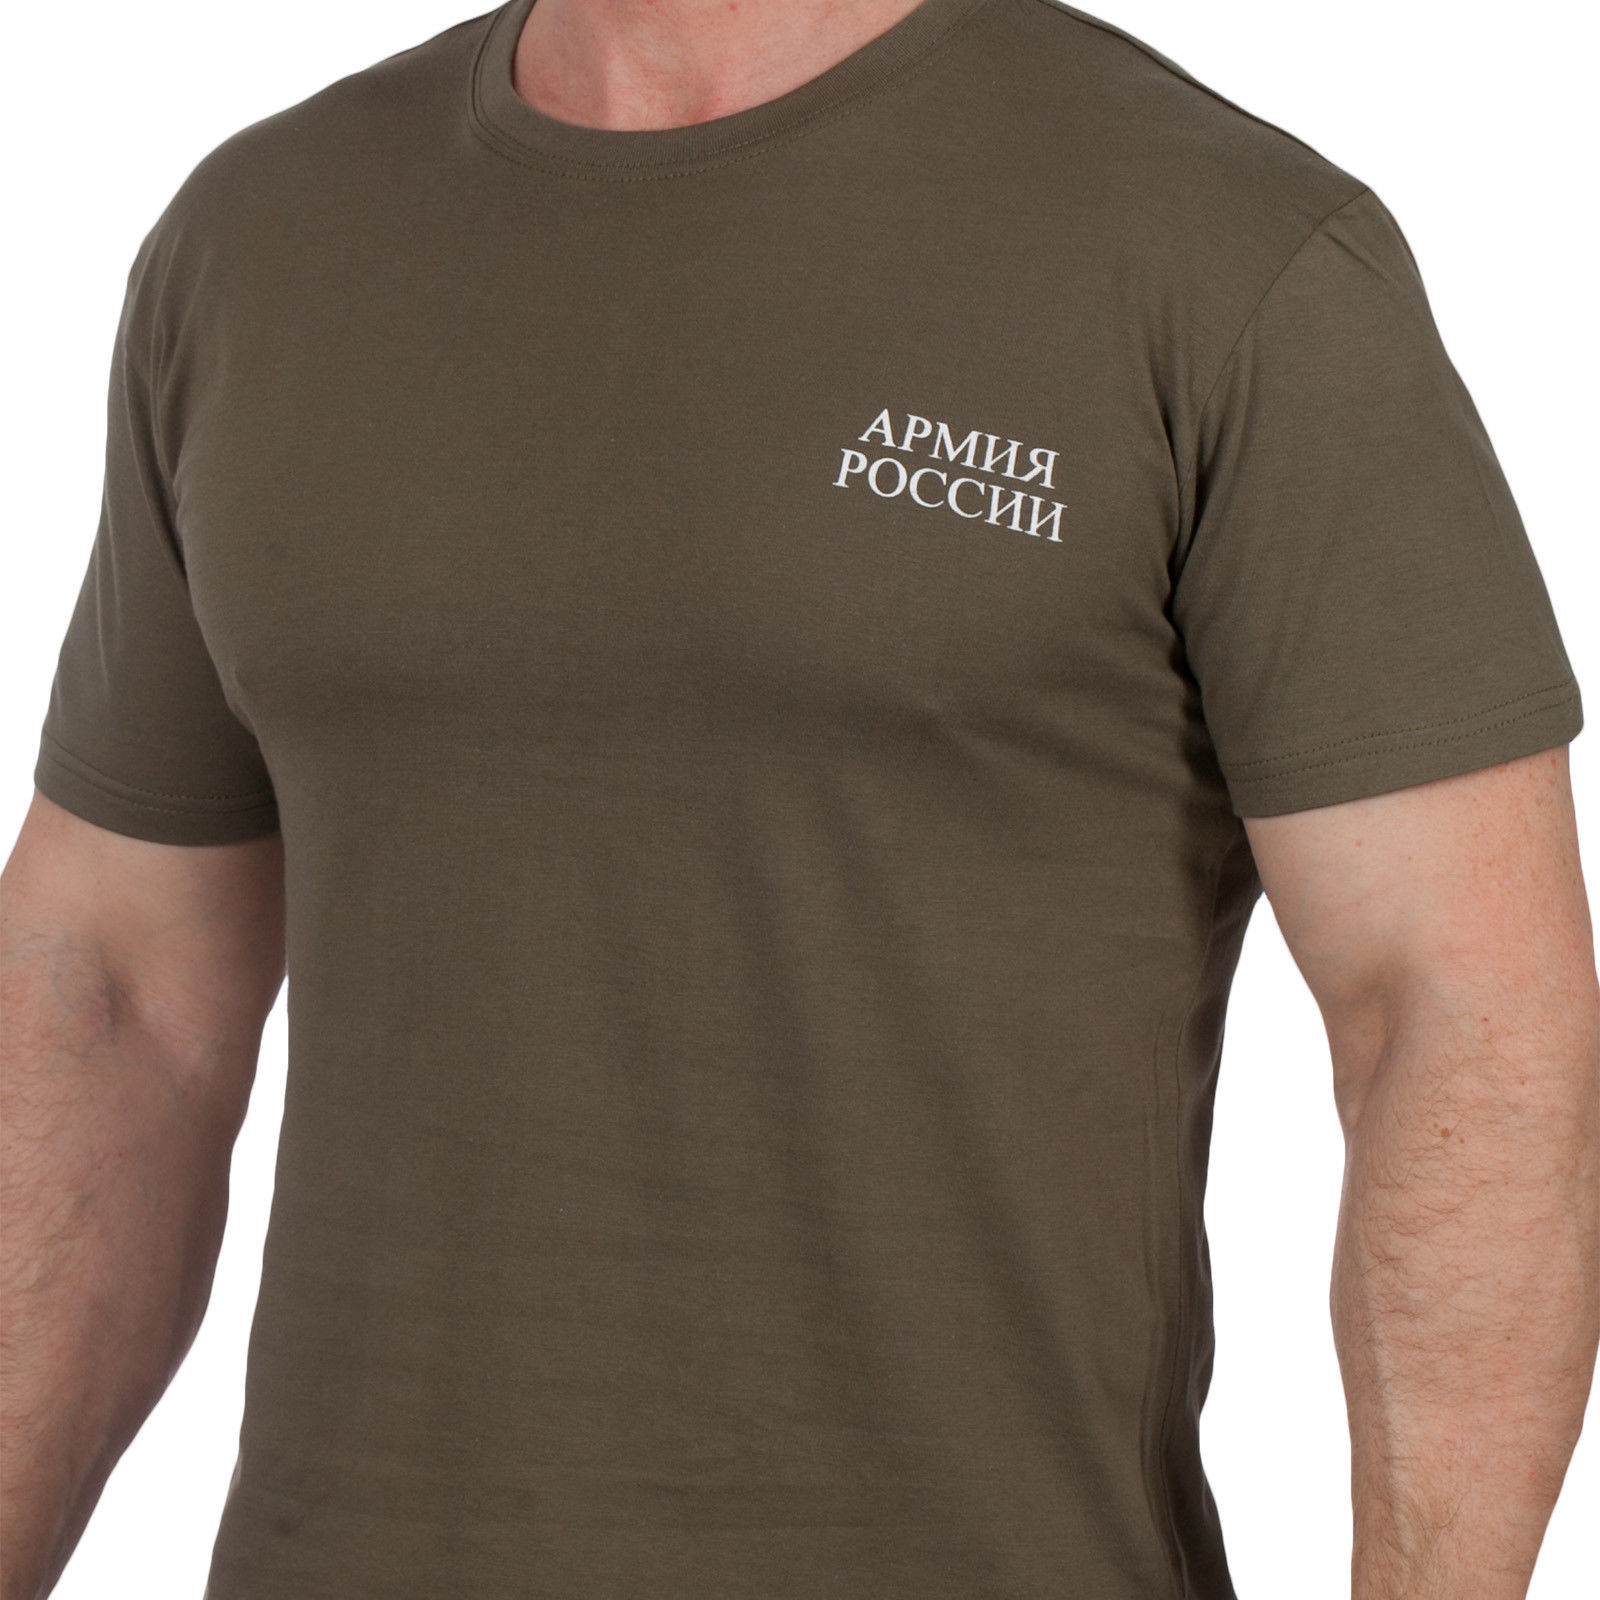 2019 Cool Russian Army Short Sleeve T-Shirt